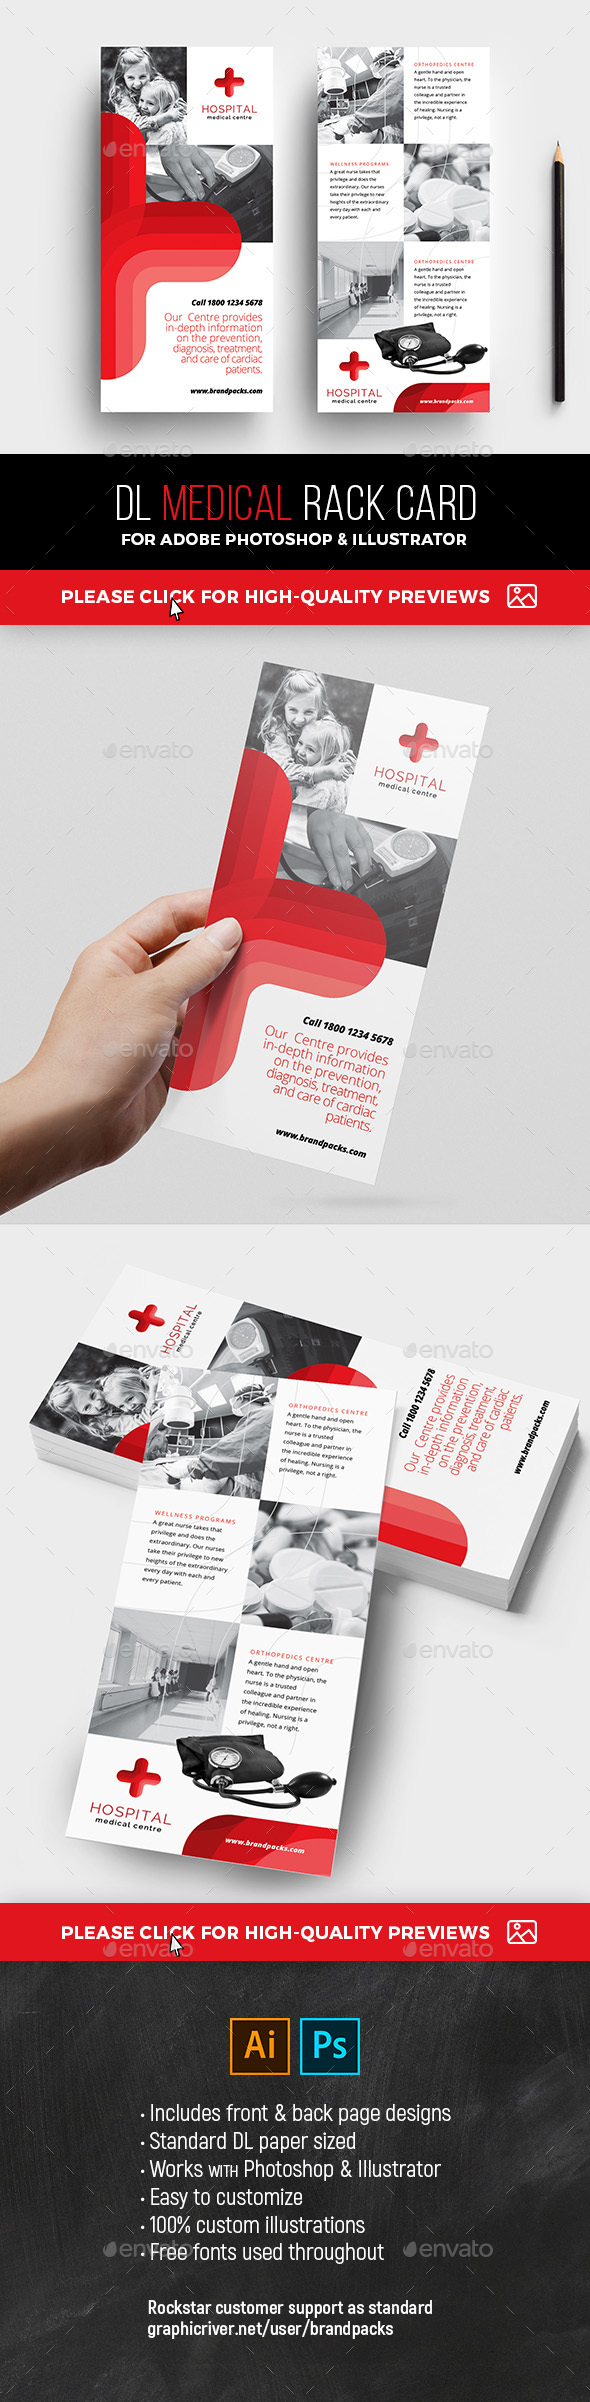 DL Medical Rack Card Template - Corporate Flyers